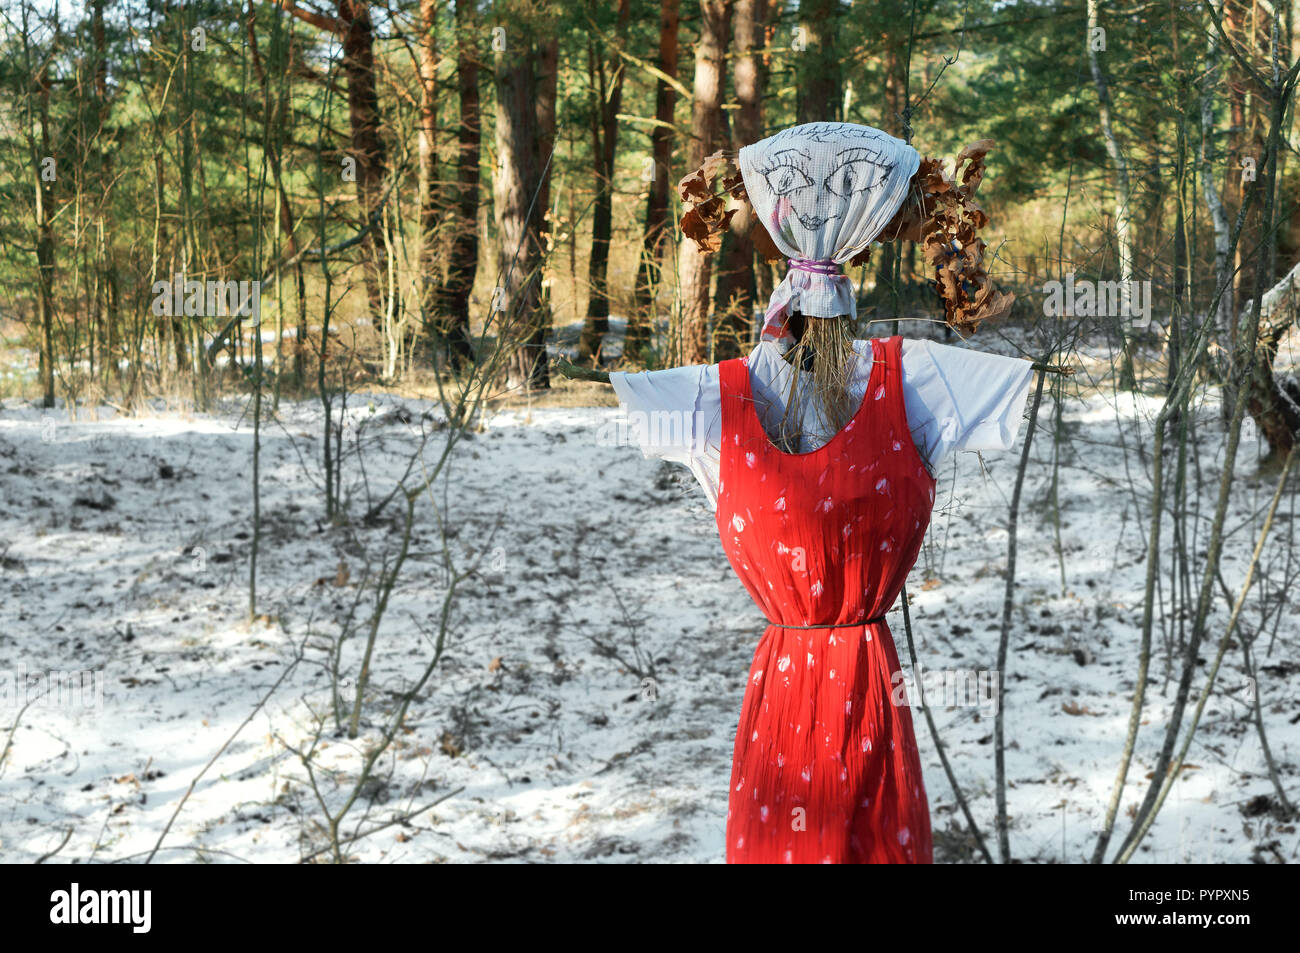 18 February 2018, Kaliningrad, Russia, Maslenitsa festival in the forest, stuffed winter in a red sundress Stock Photo